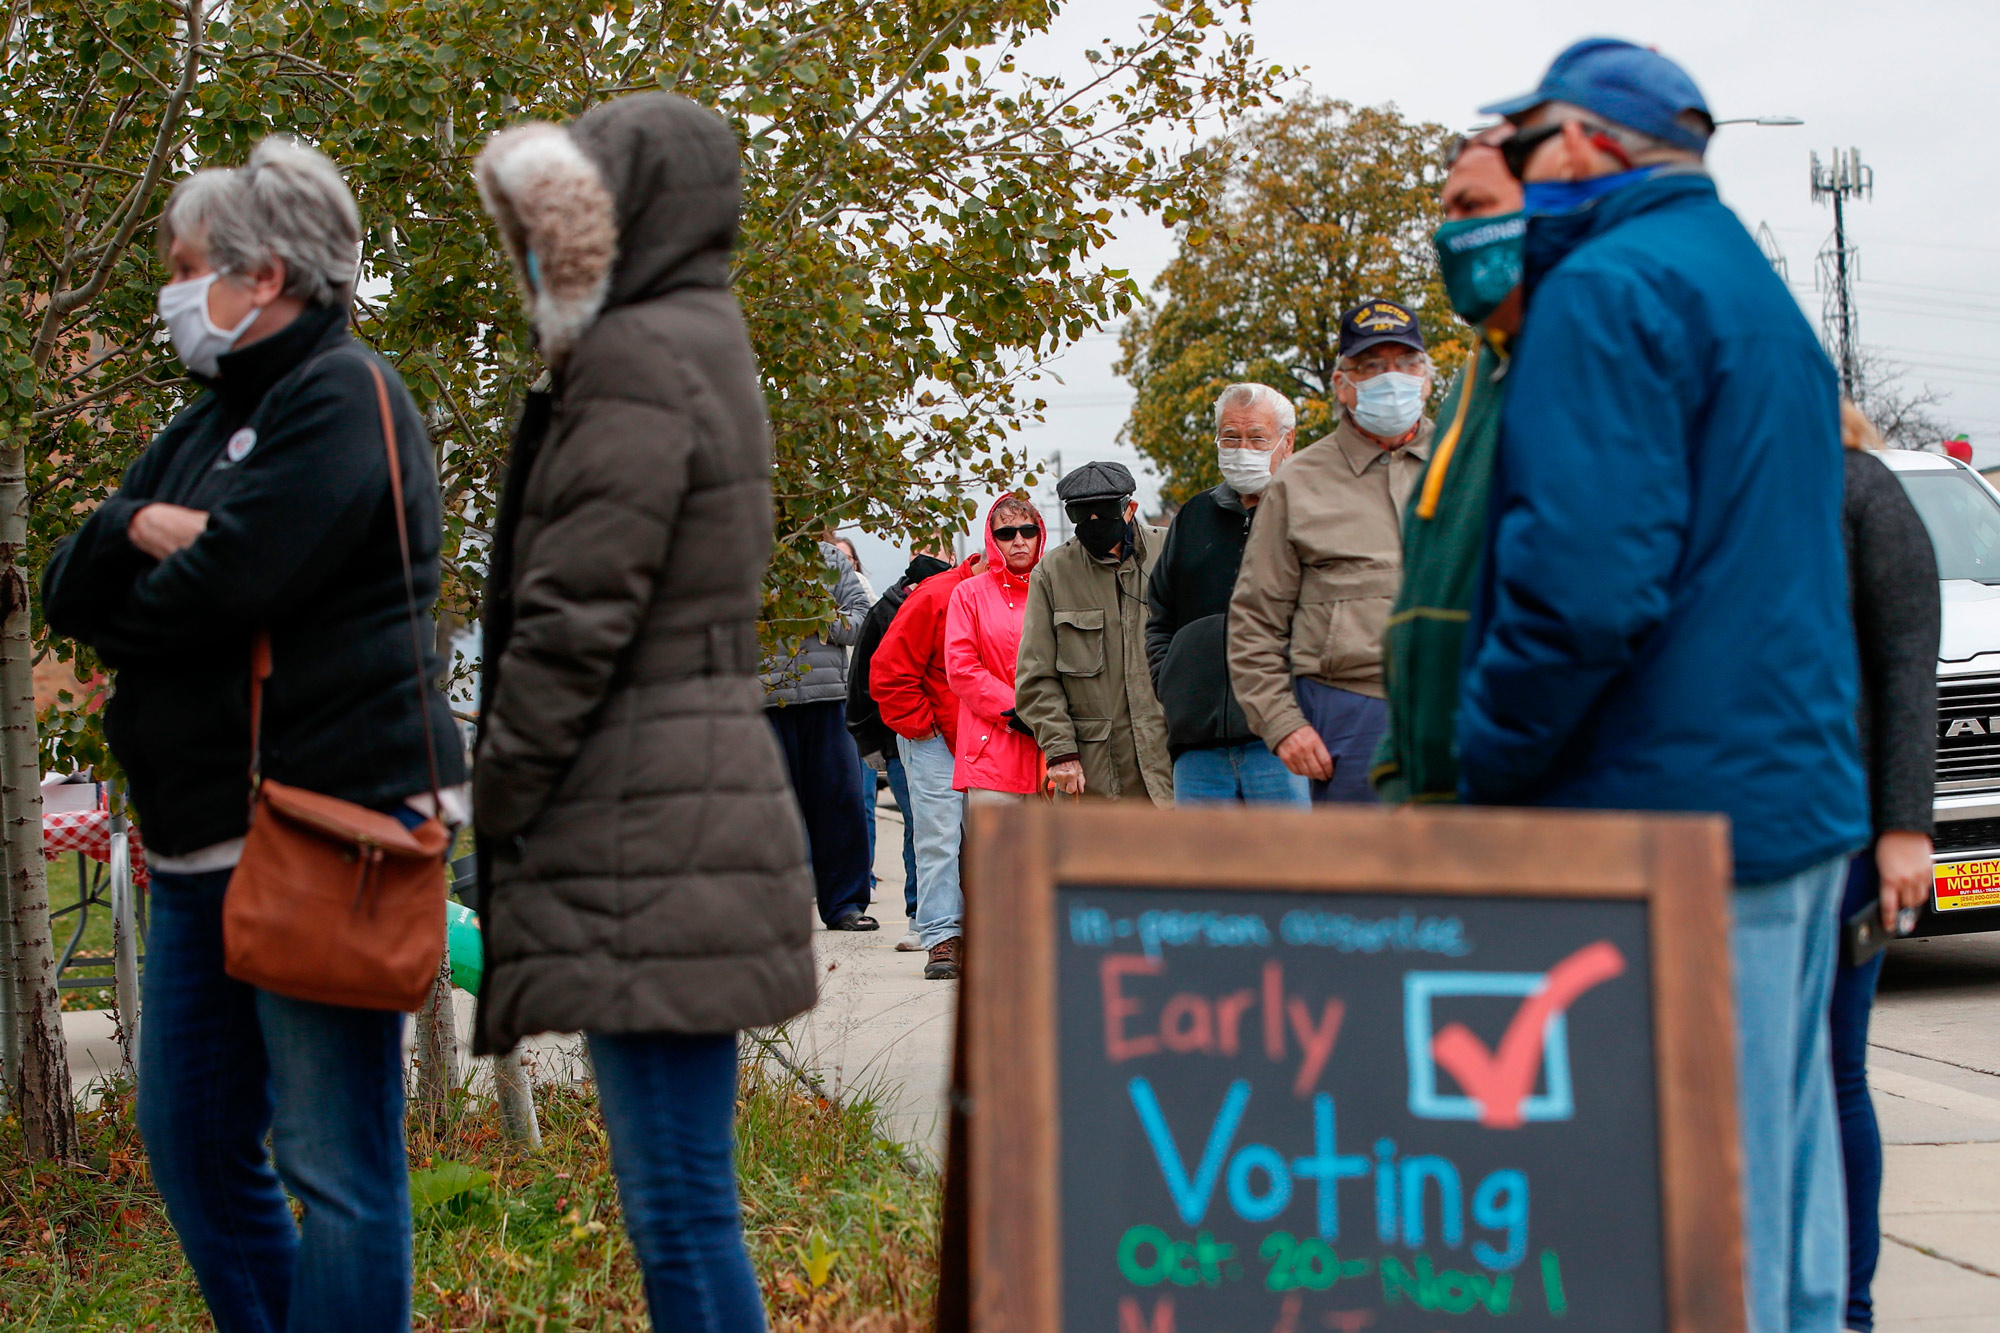 People wait in line to cast their ballots outside Tippecanoe Library in Milwaukee, Wisconsin, on October 20.